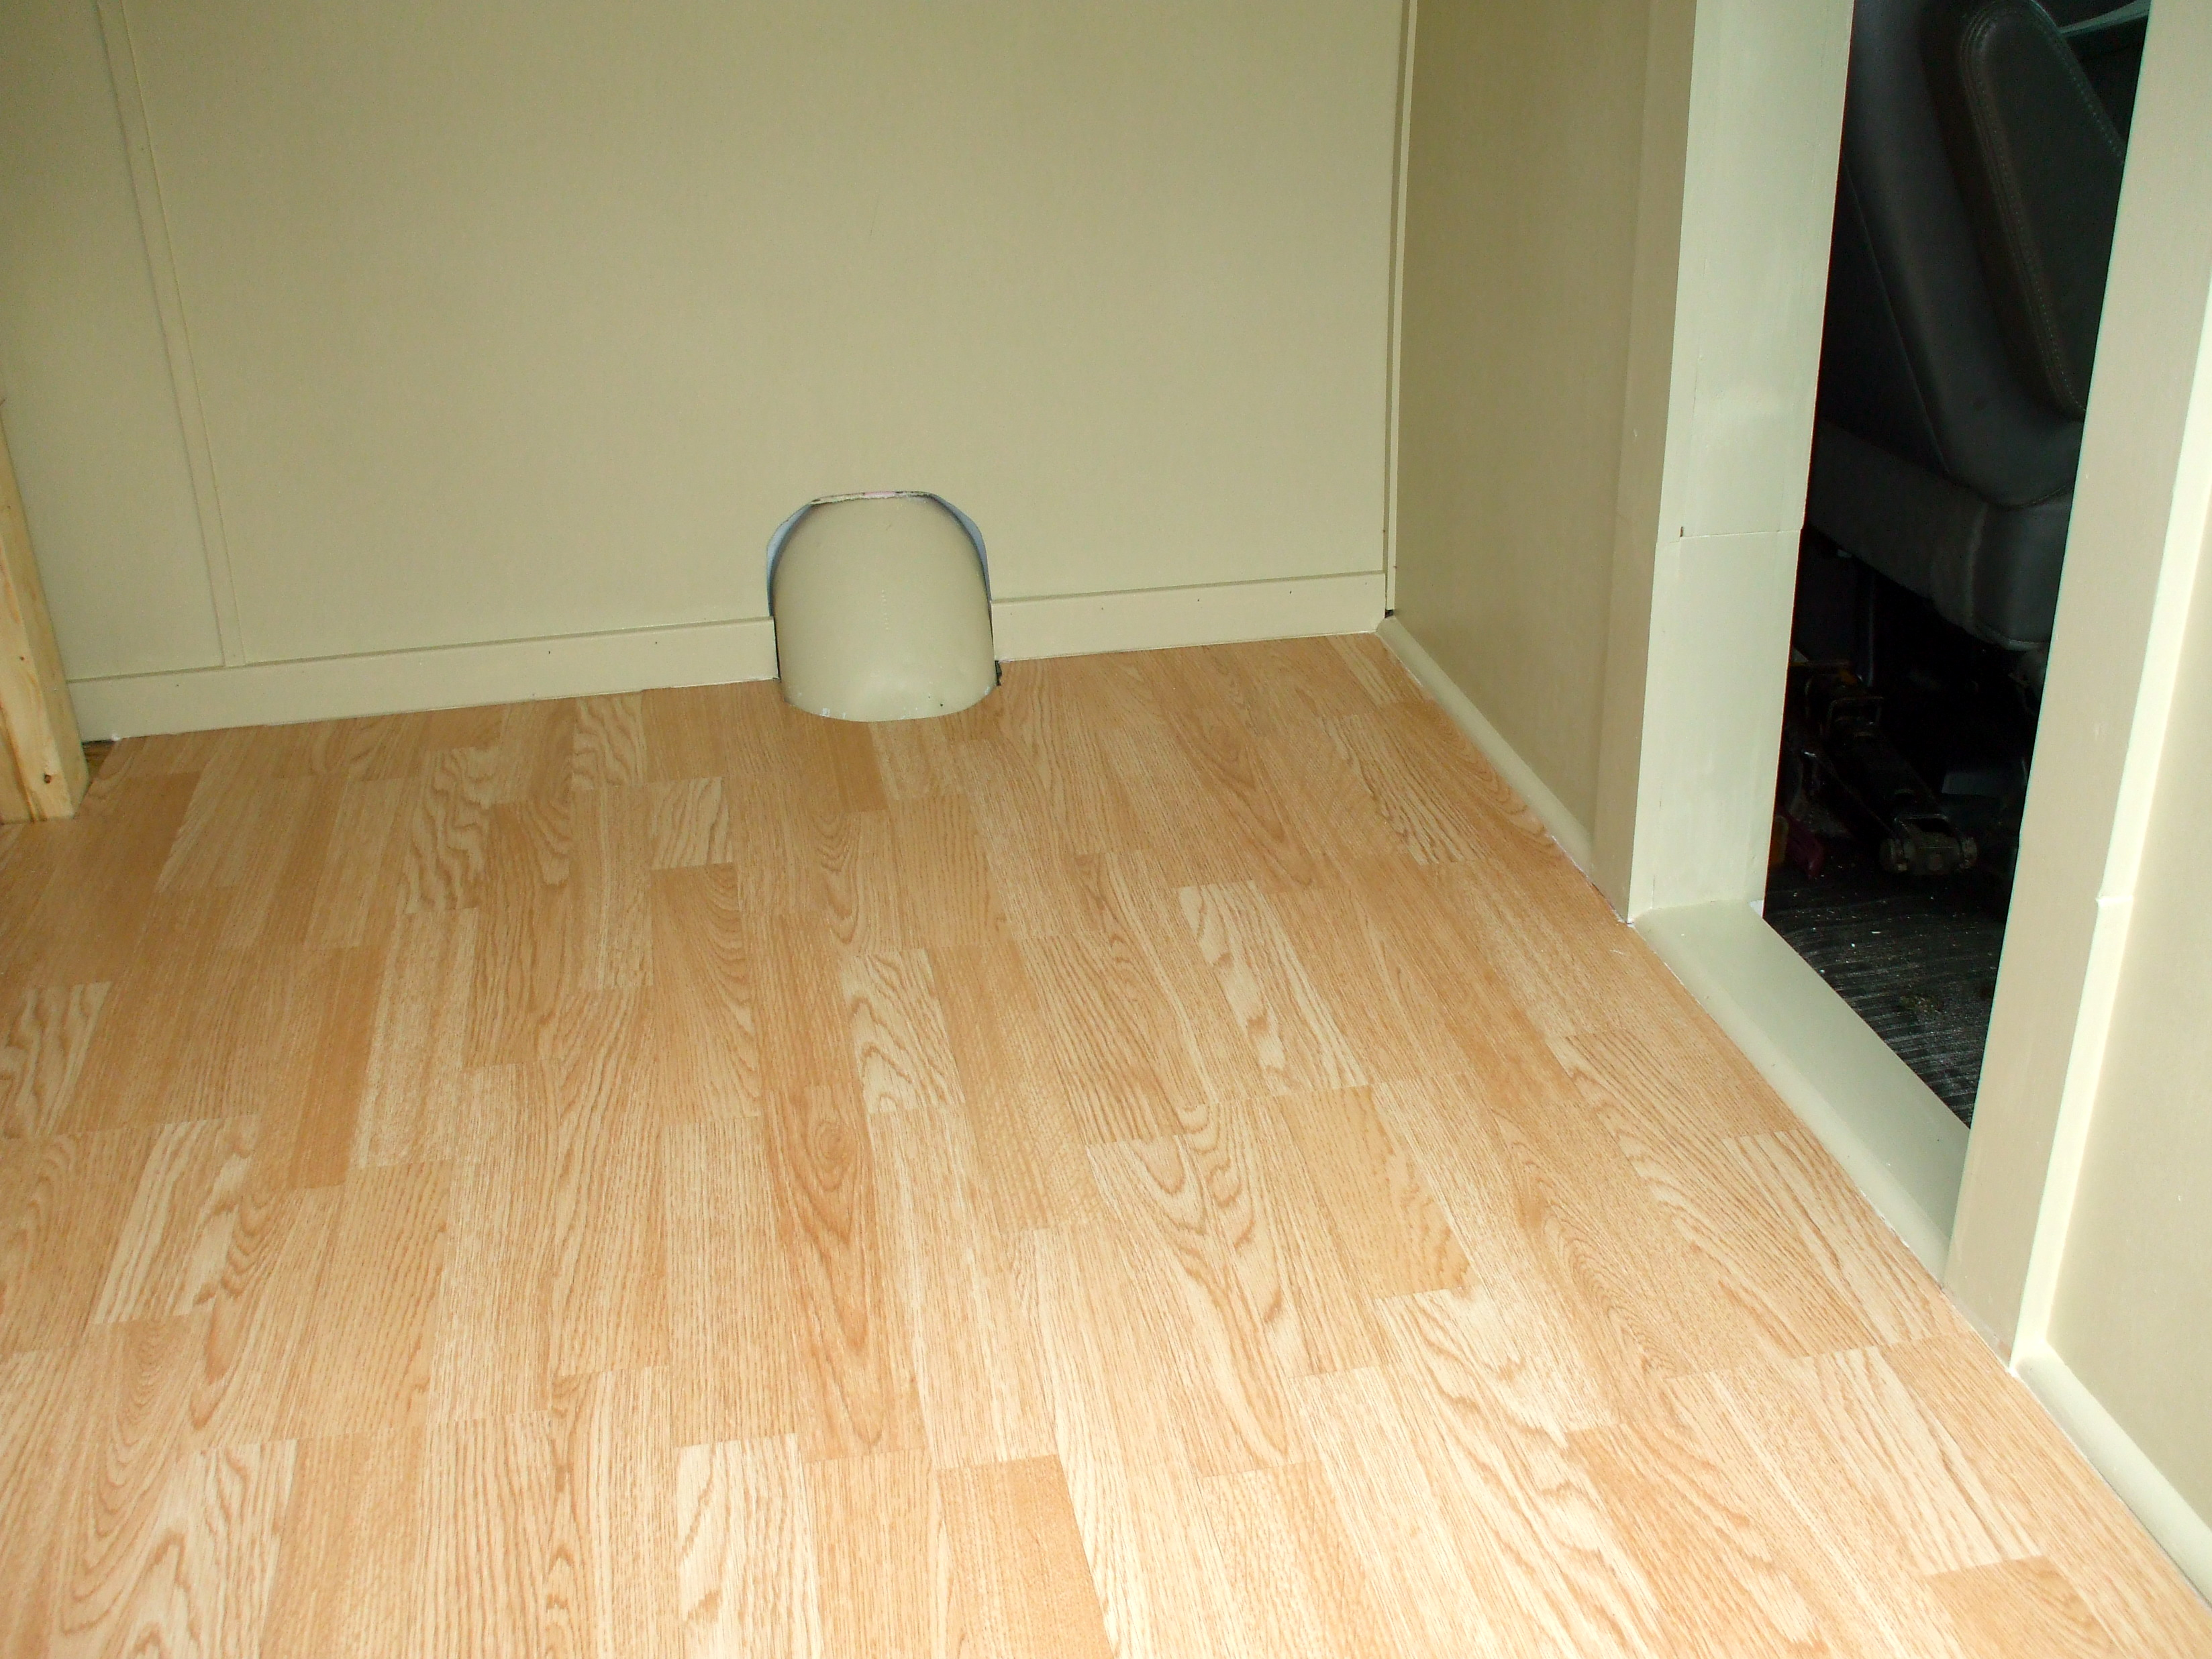 laminate flooring in an RV camper van